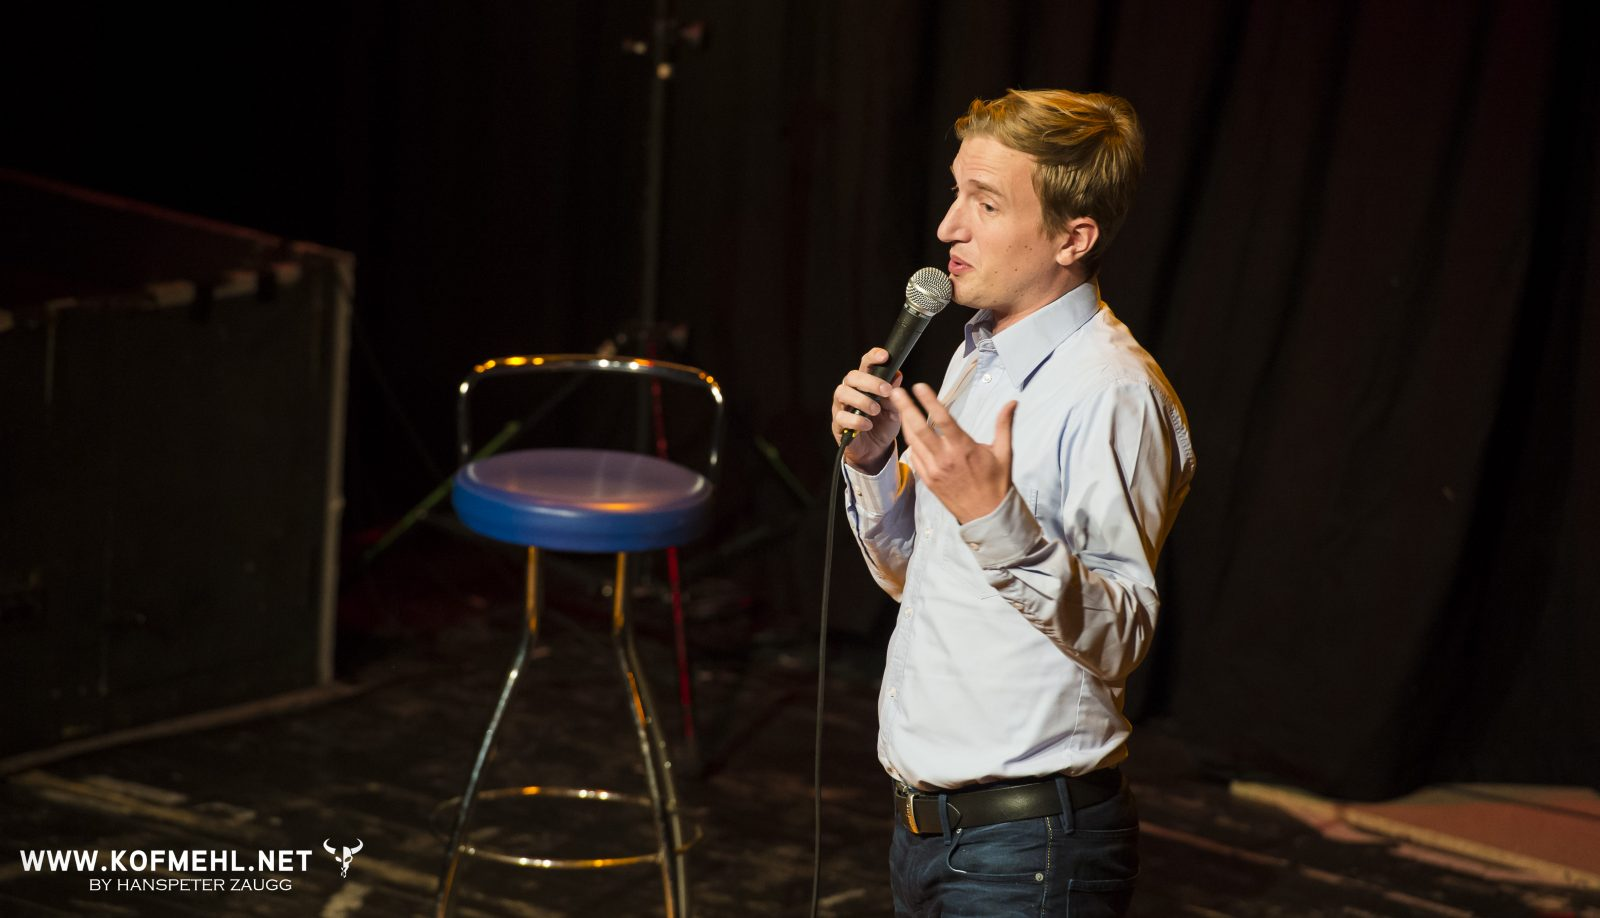 Sungard Exhibition Stand Up Comedy : Stand up comedy show kulturfabrik kofmehl